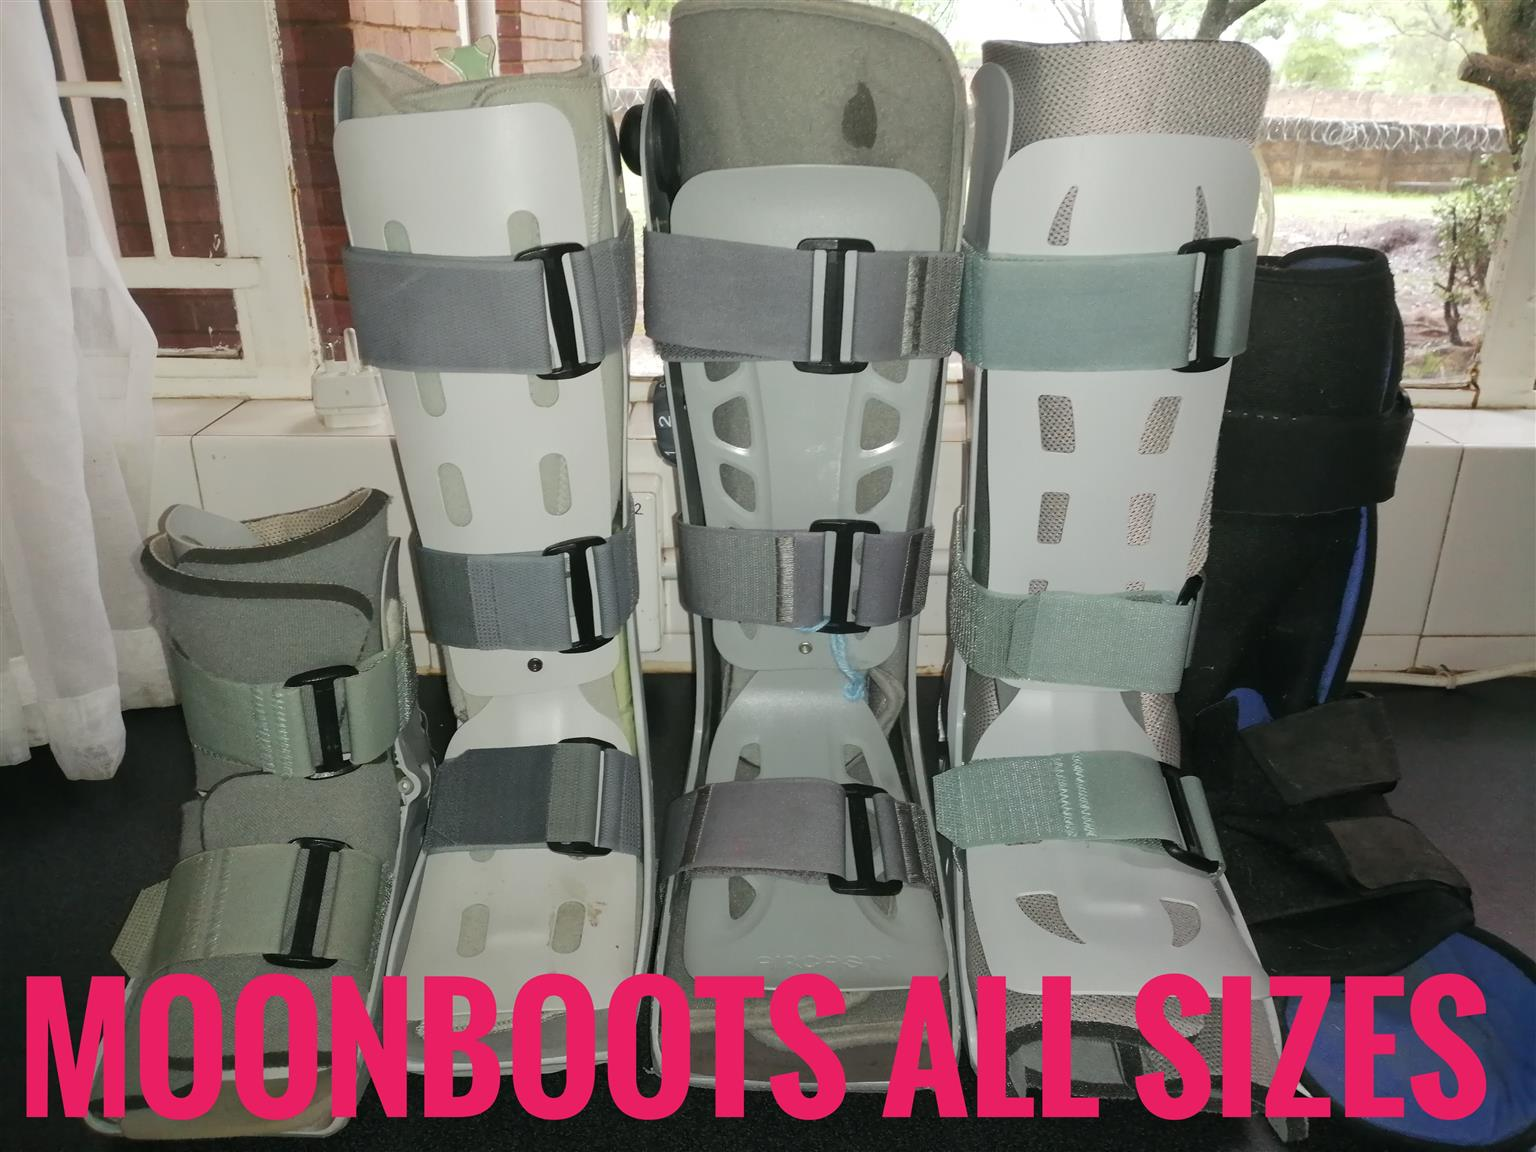 Moonboots For Sale